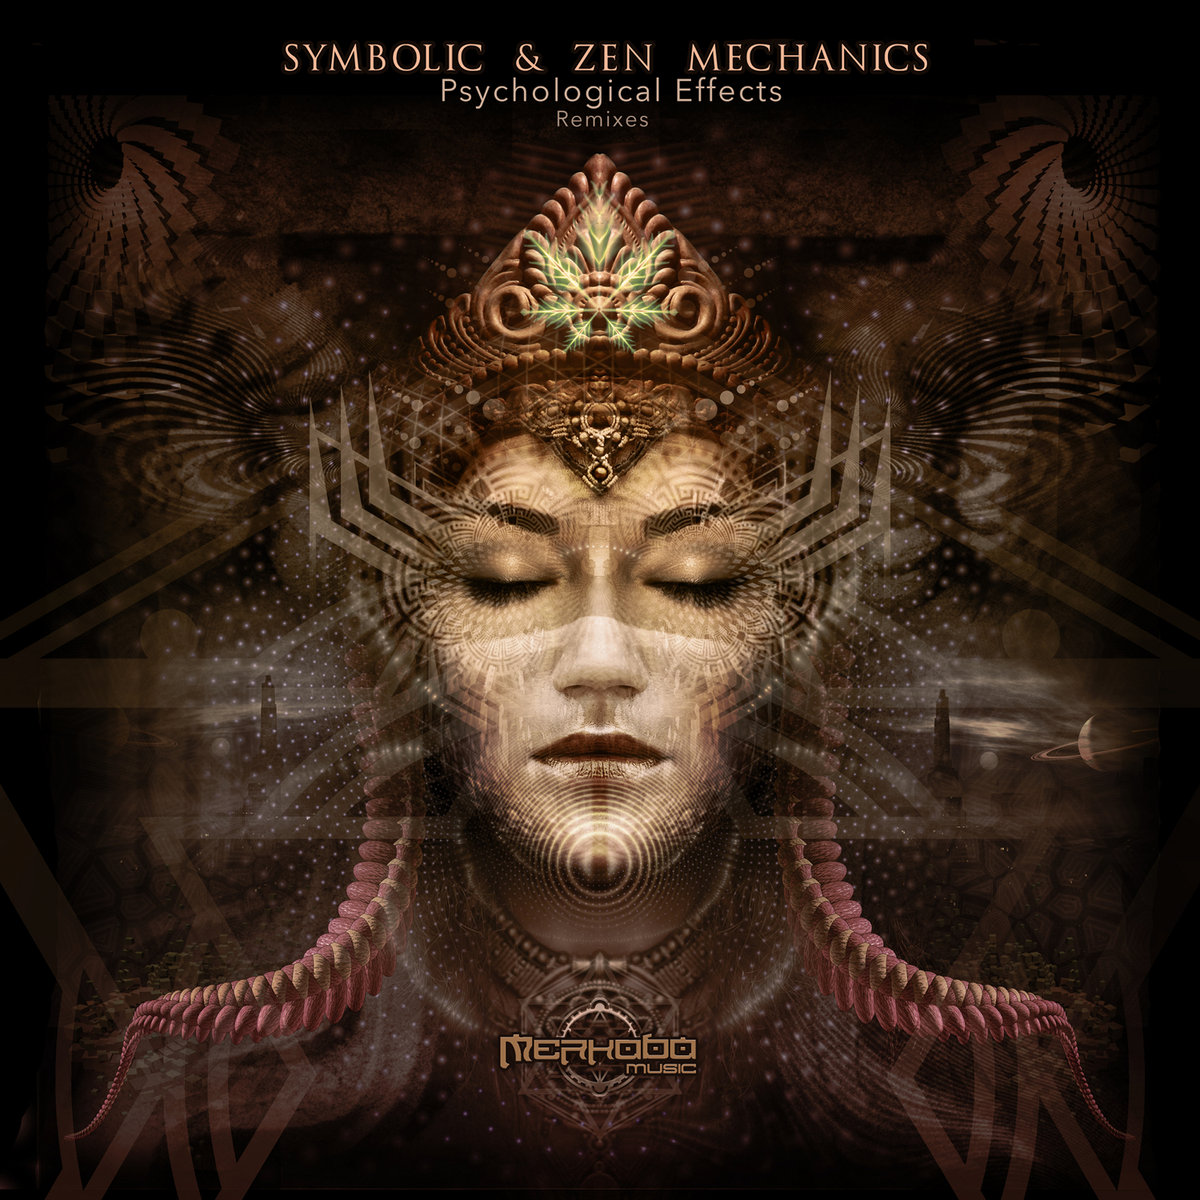 Symbolic & Zen Mechanics - Psychological Effects - Remixes